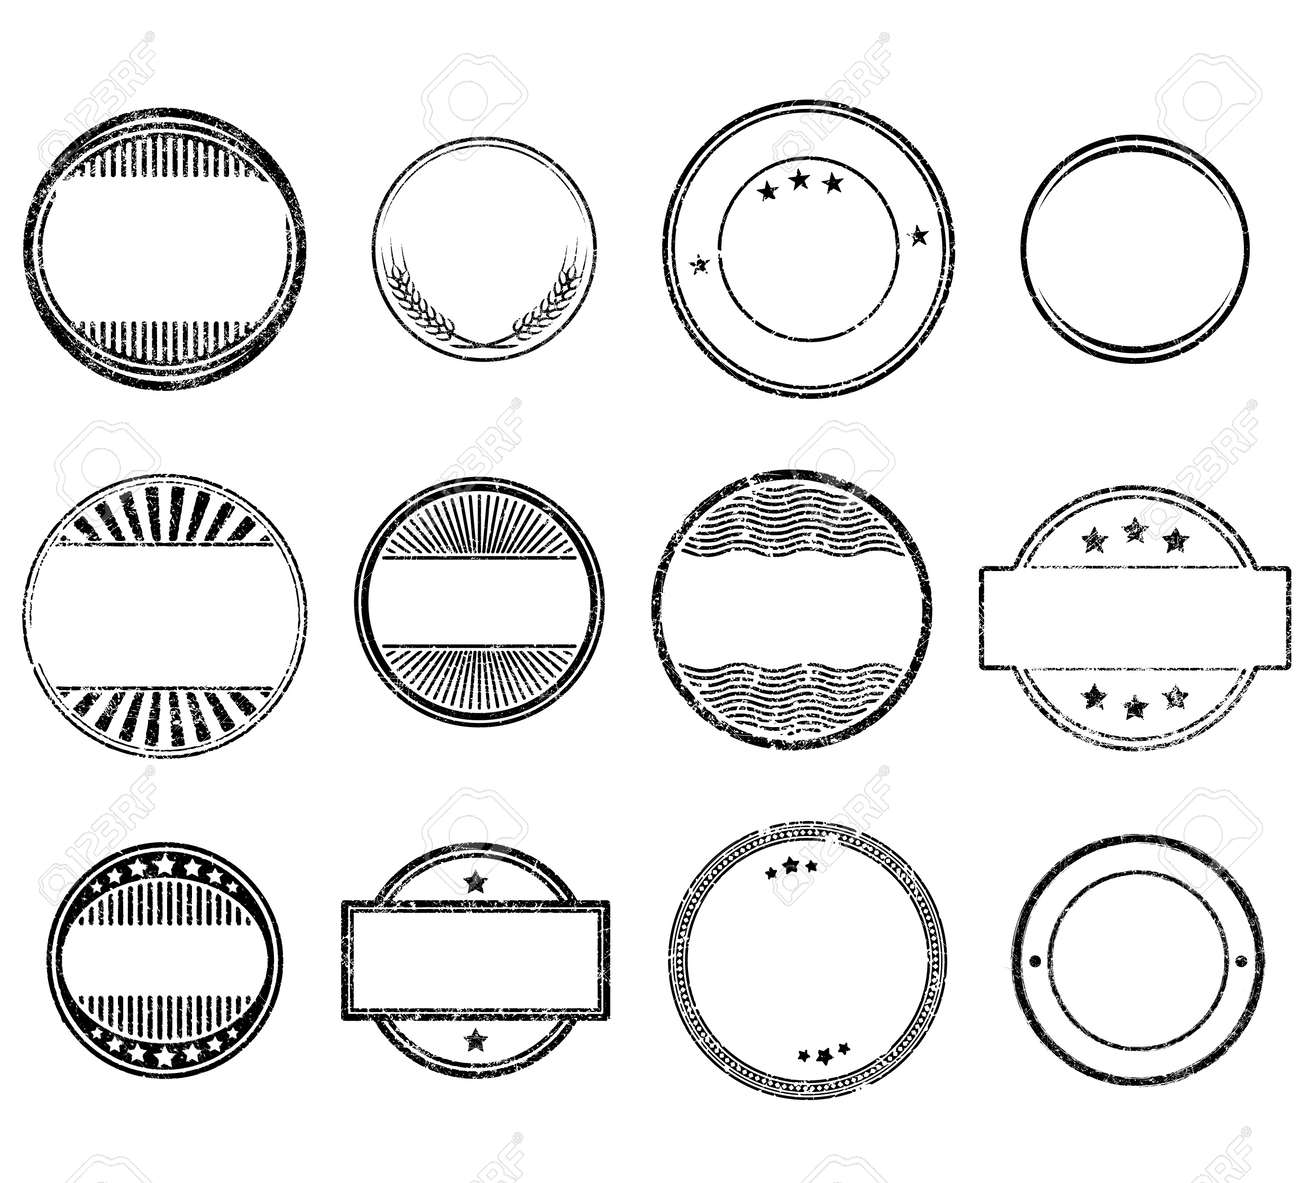 Set of circle grunge rubber stamps templates - 140289645